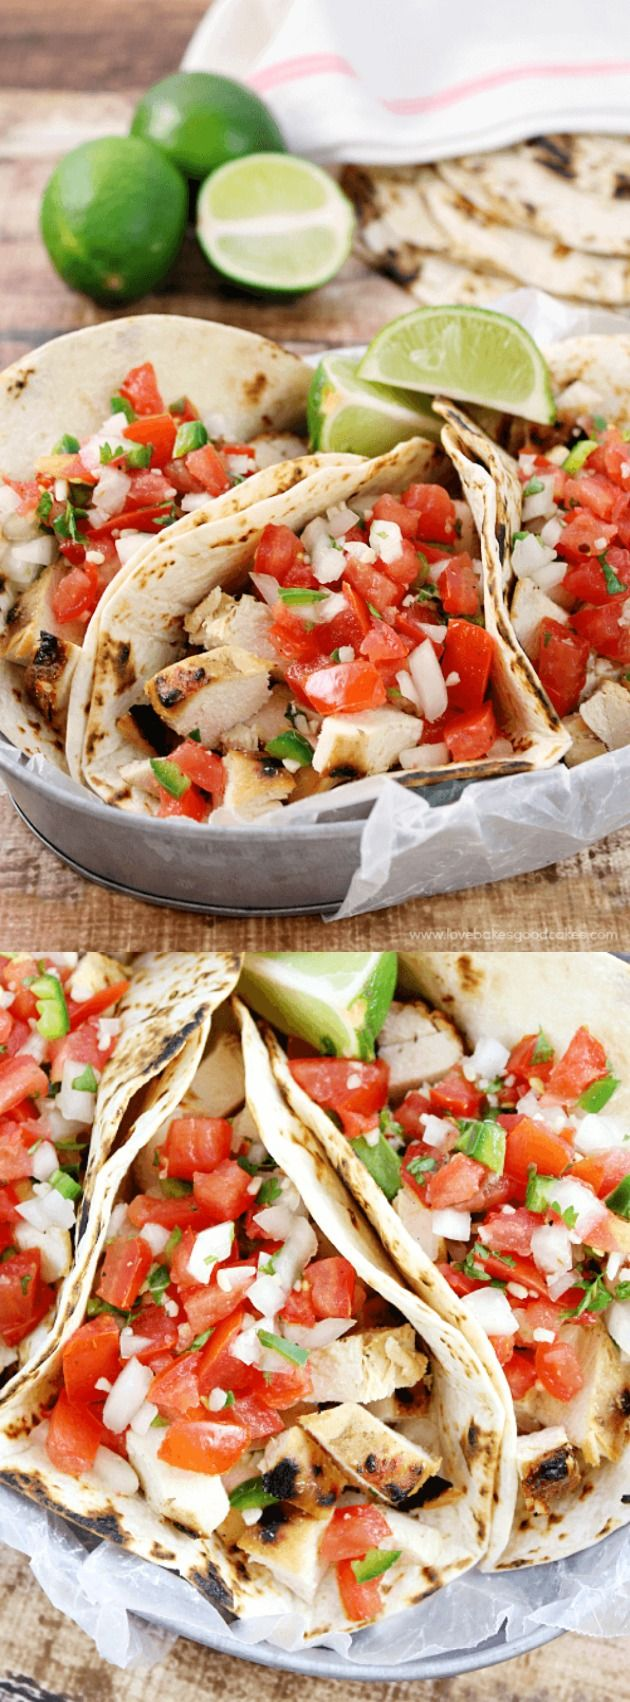 These Grilled Chicken Fresco Tacos from Love Bakes Good Cakes are the perfect summer dinner -- they are light on calories and fat while still enjoying BIG flavor!